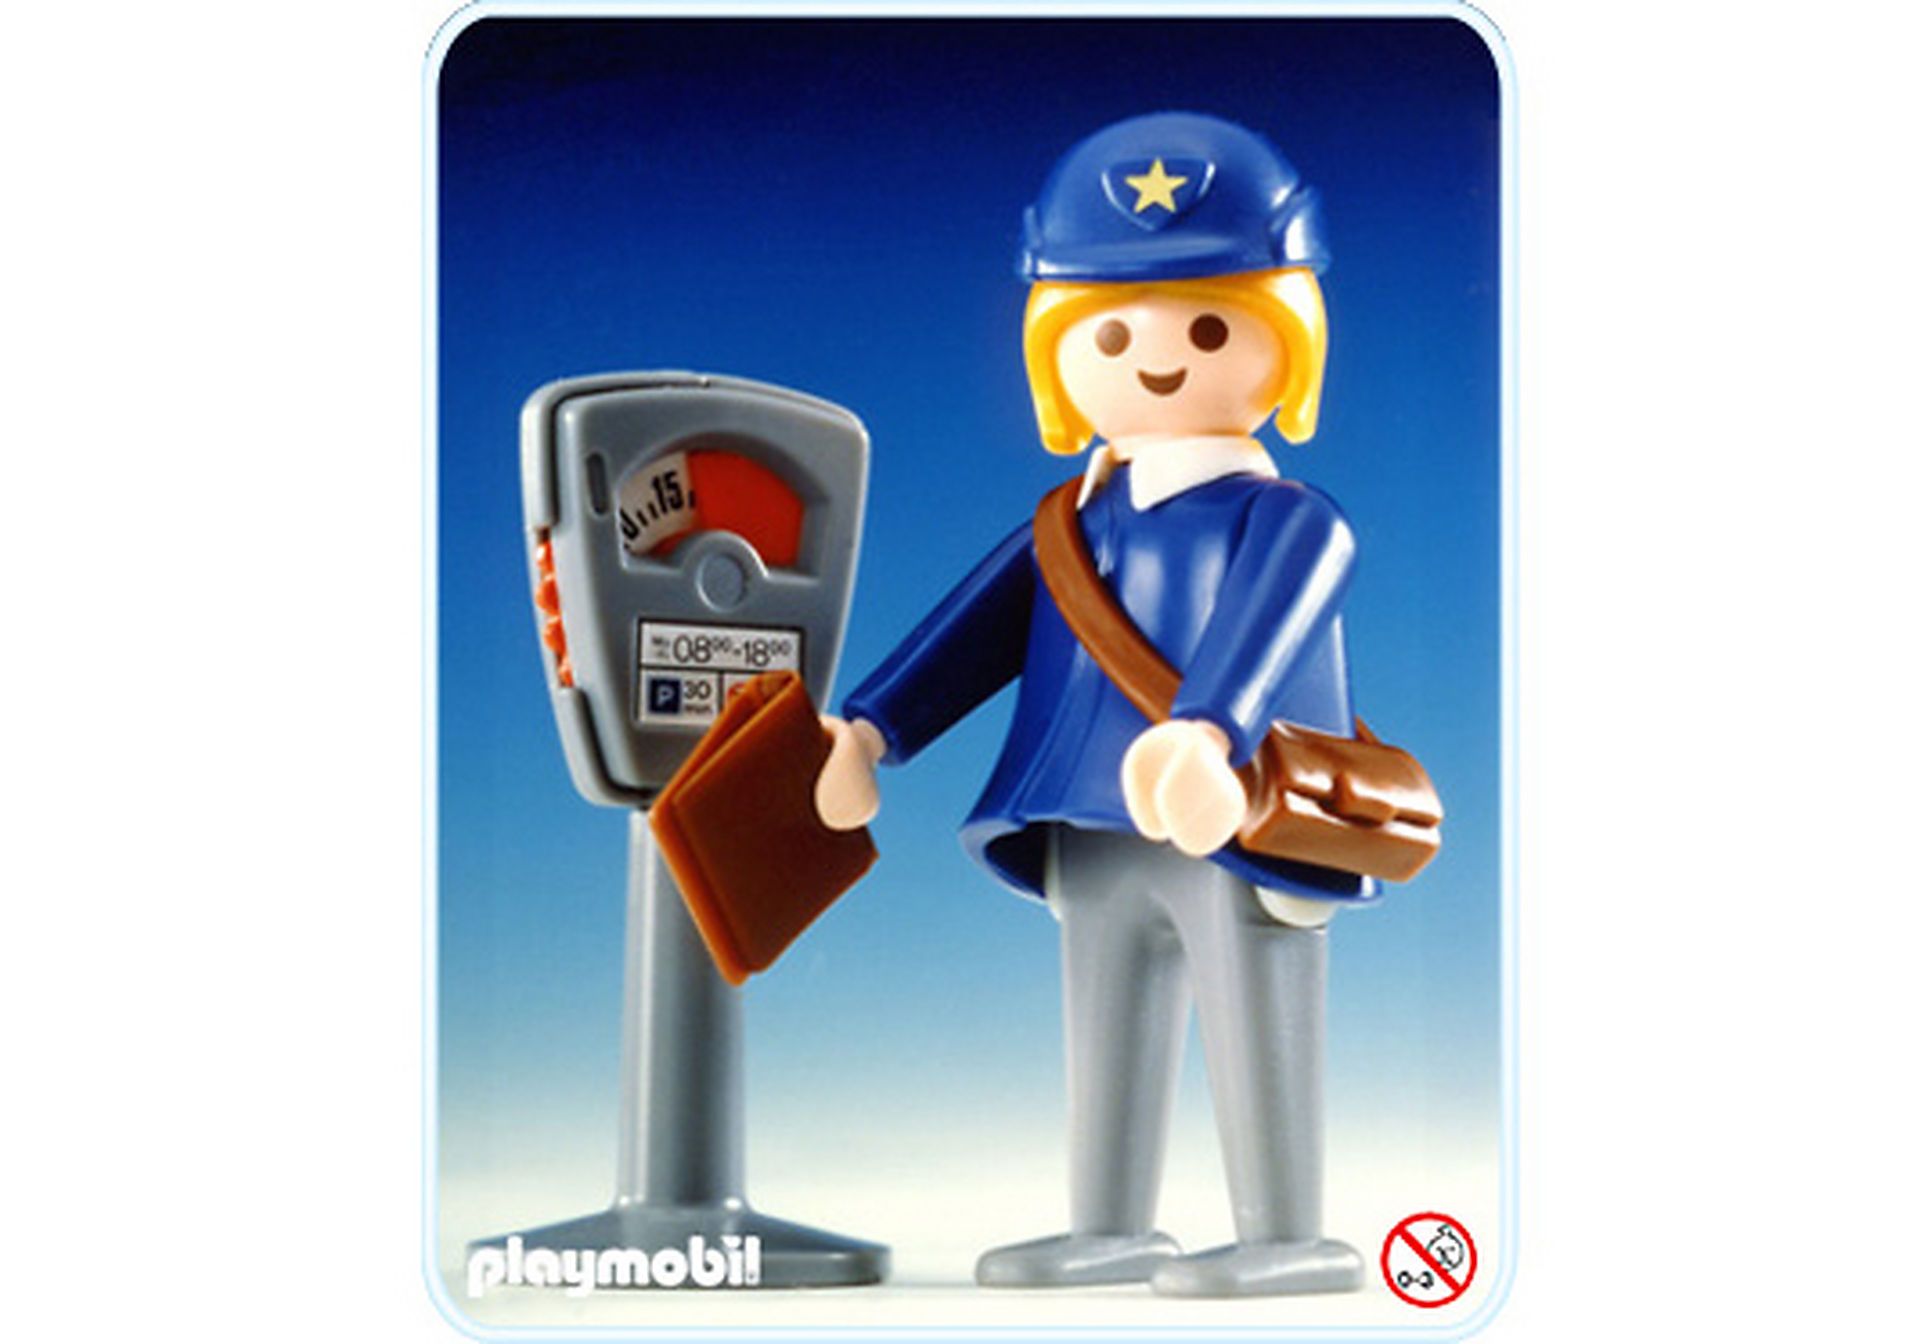 http://media.playmobil.com/i/playmobil/3349-A_product_detail/contractuelle/parcmetr